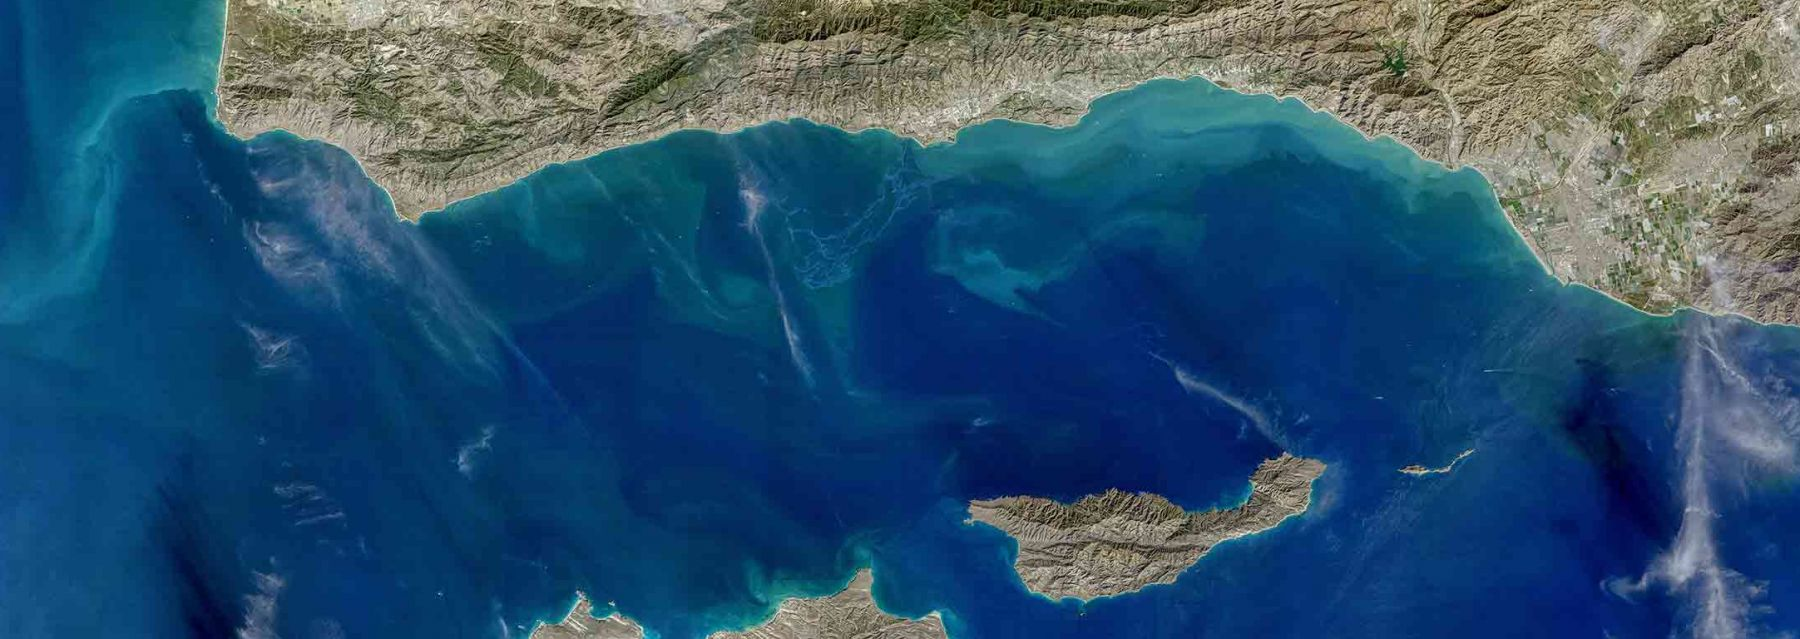 Landsat-8 Image of Santa Barbara Channel. Credit: NASA Goddard OBPG